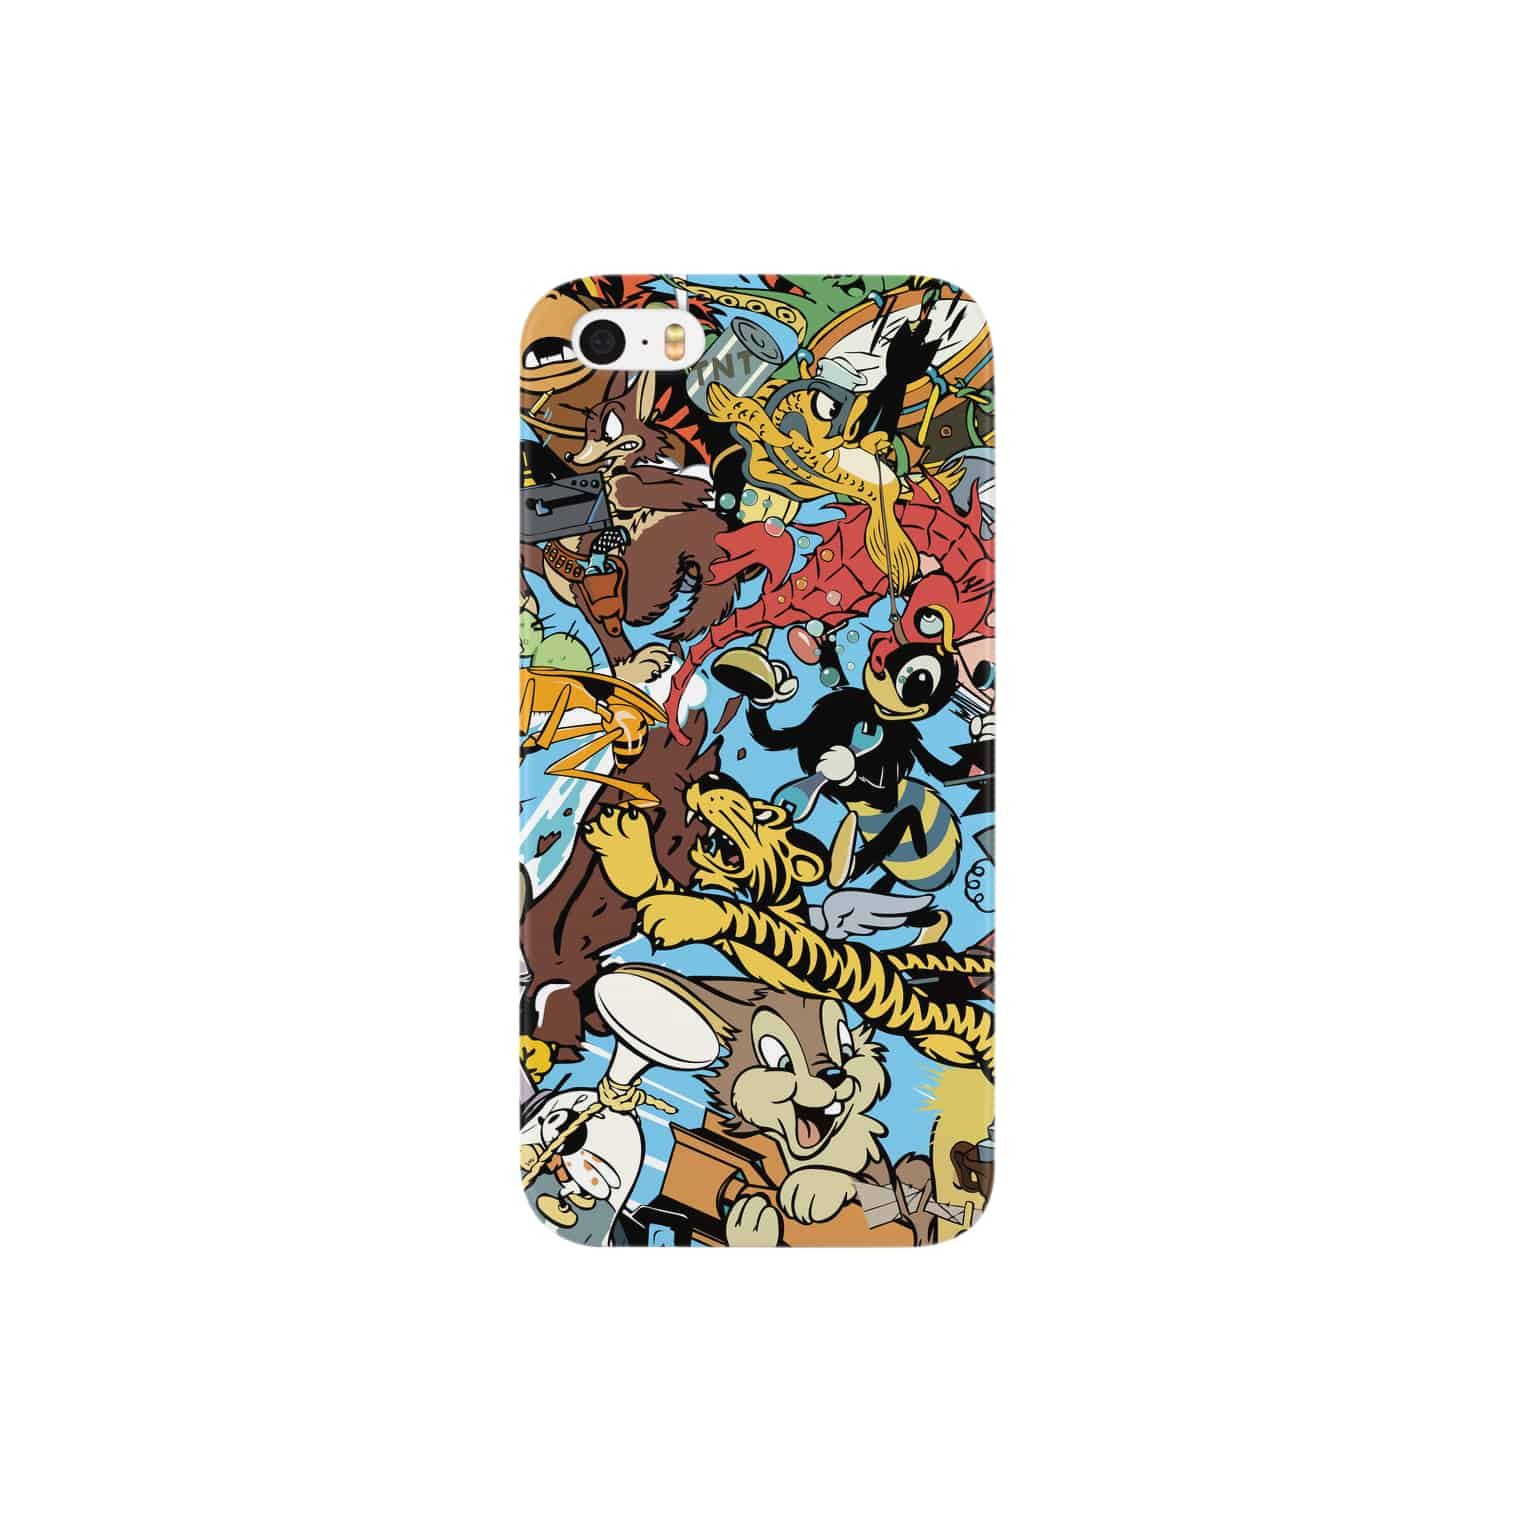 CYBERDYNEのinsigno_characters Smartphone cases